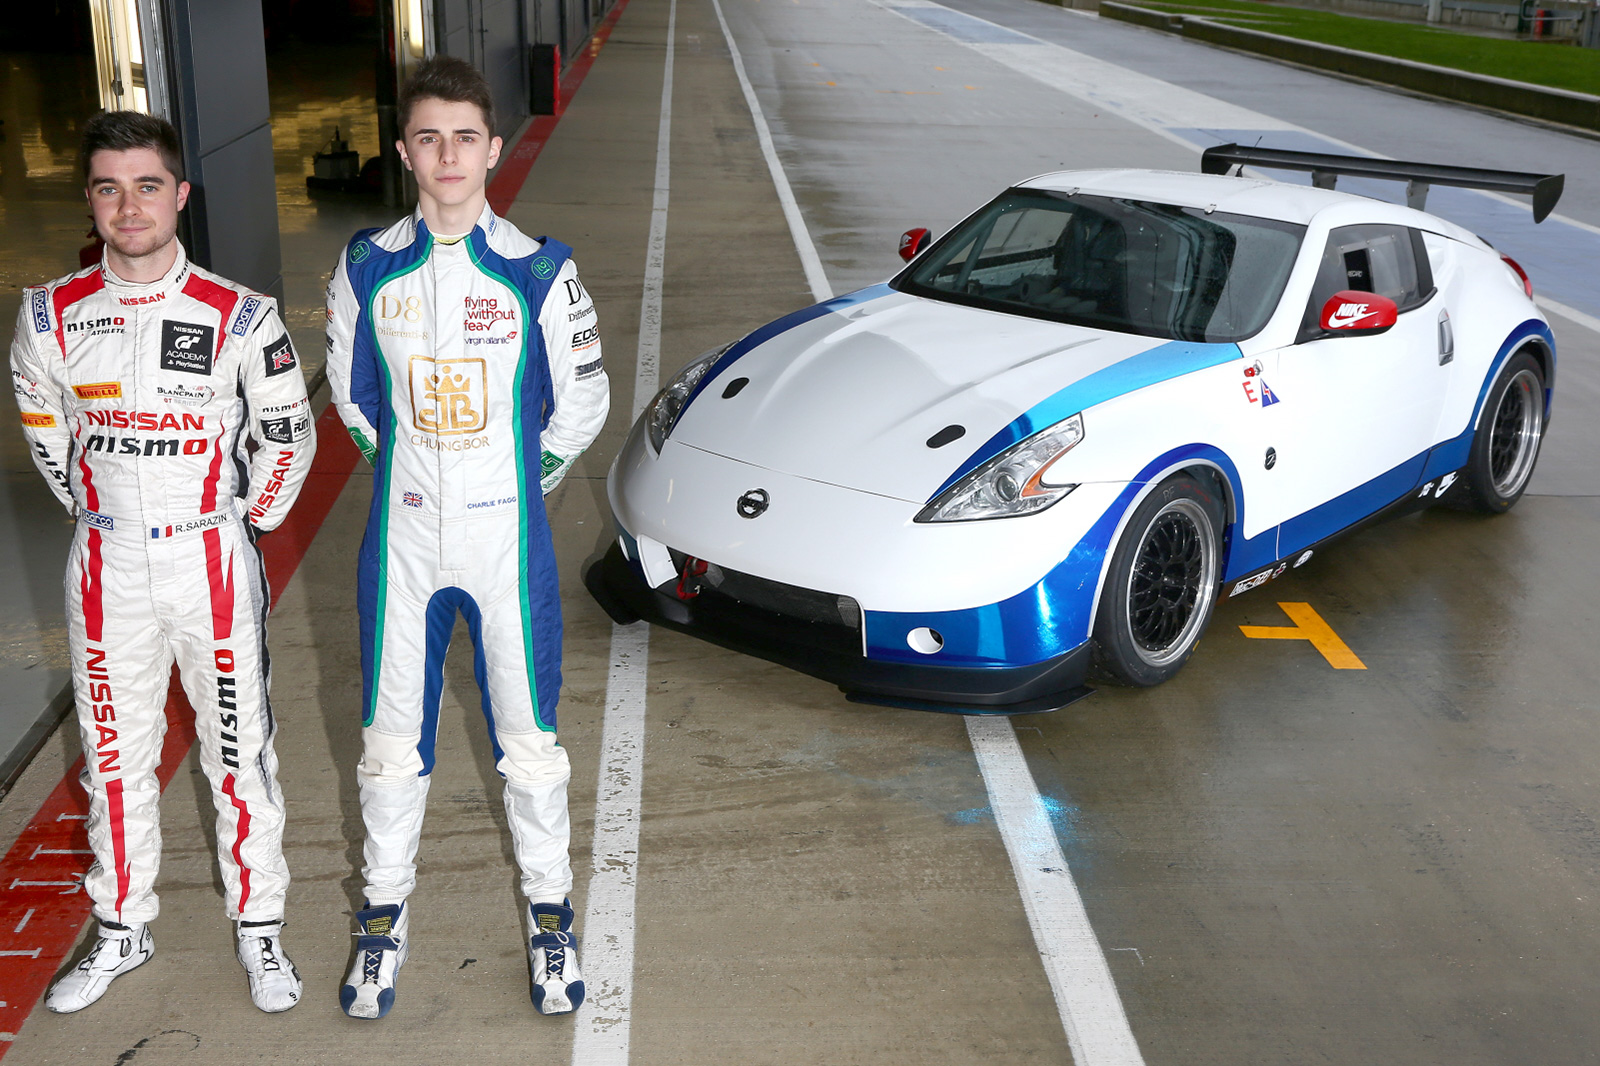 Charlie Fagg and Romain Sarazin team-up for first time at Silverstone GP.